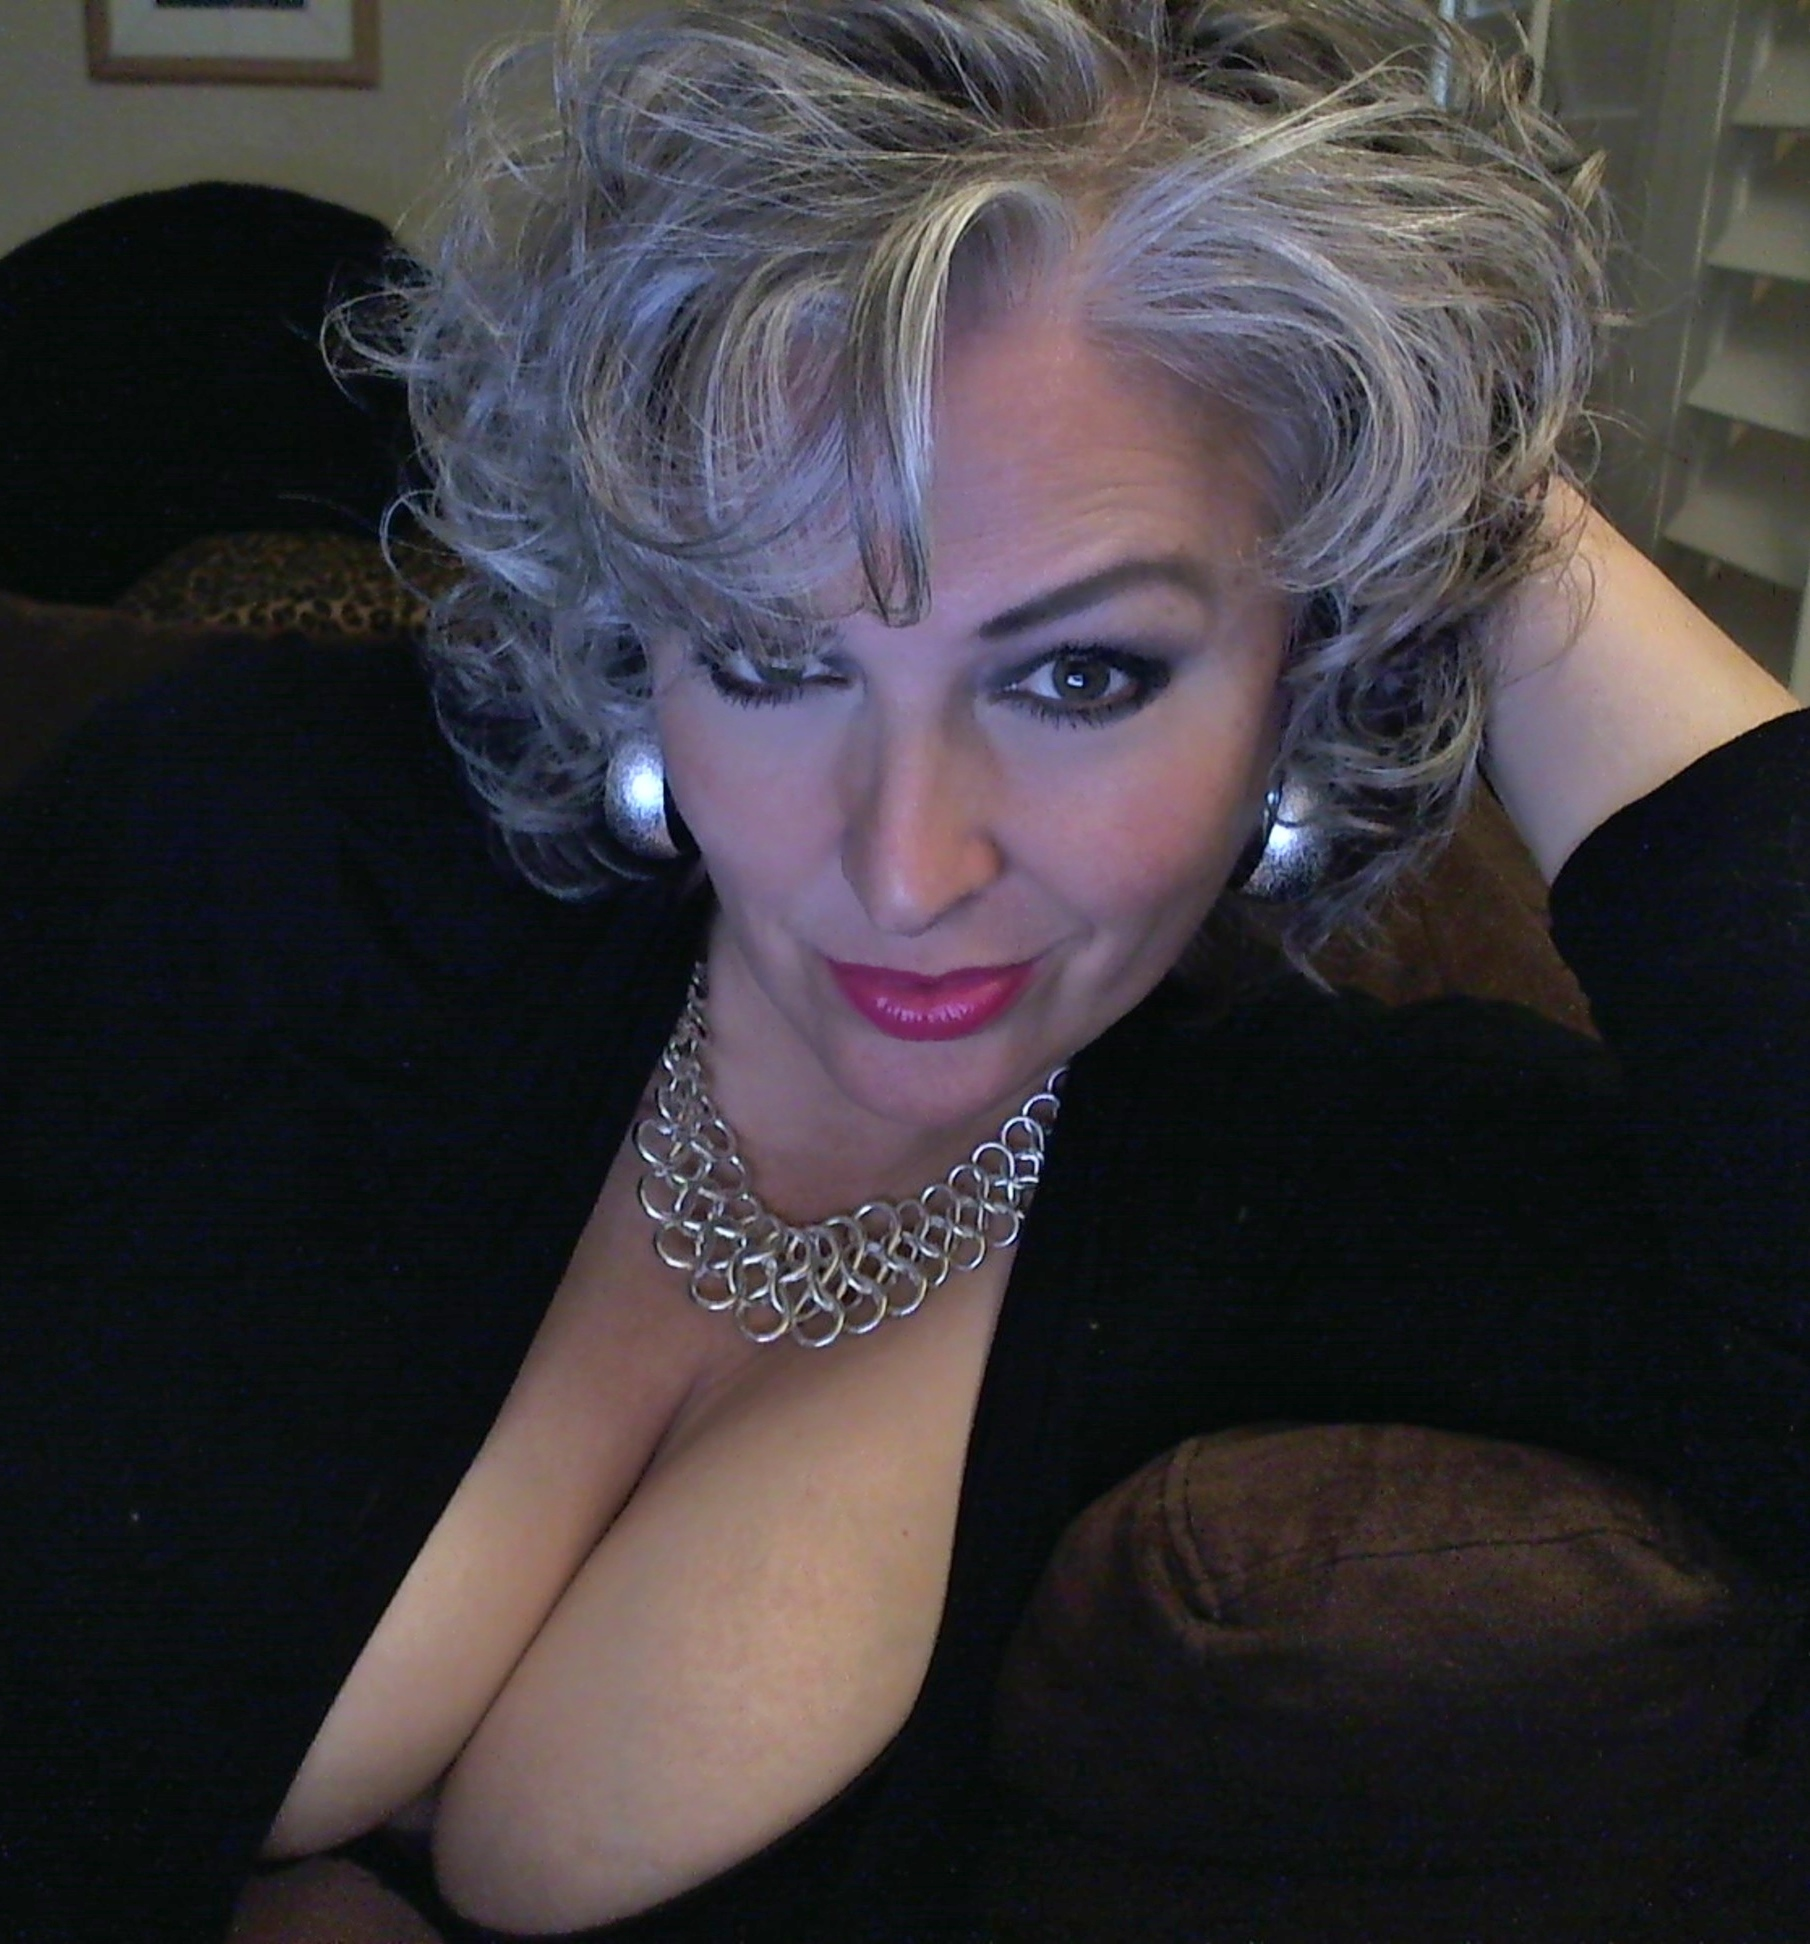 Thanks So Much For Stopping By To Check Me Out I Look Forward To Talking With You I Am Very Sexual And Love Getting Off Together